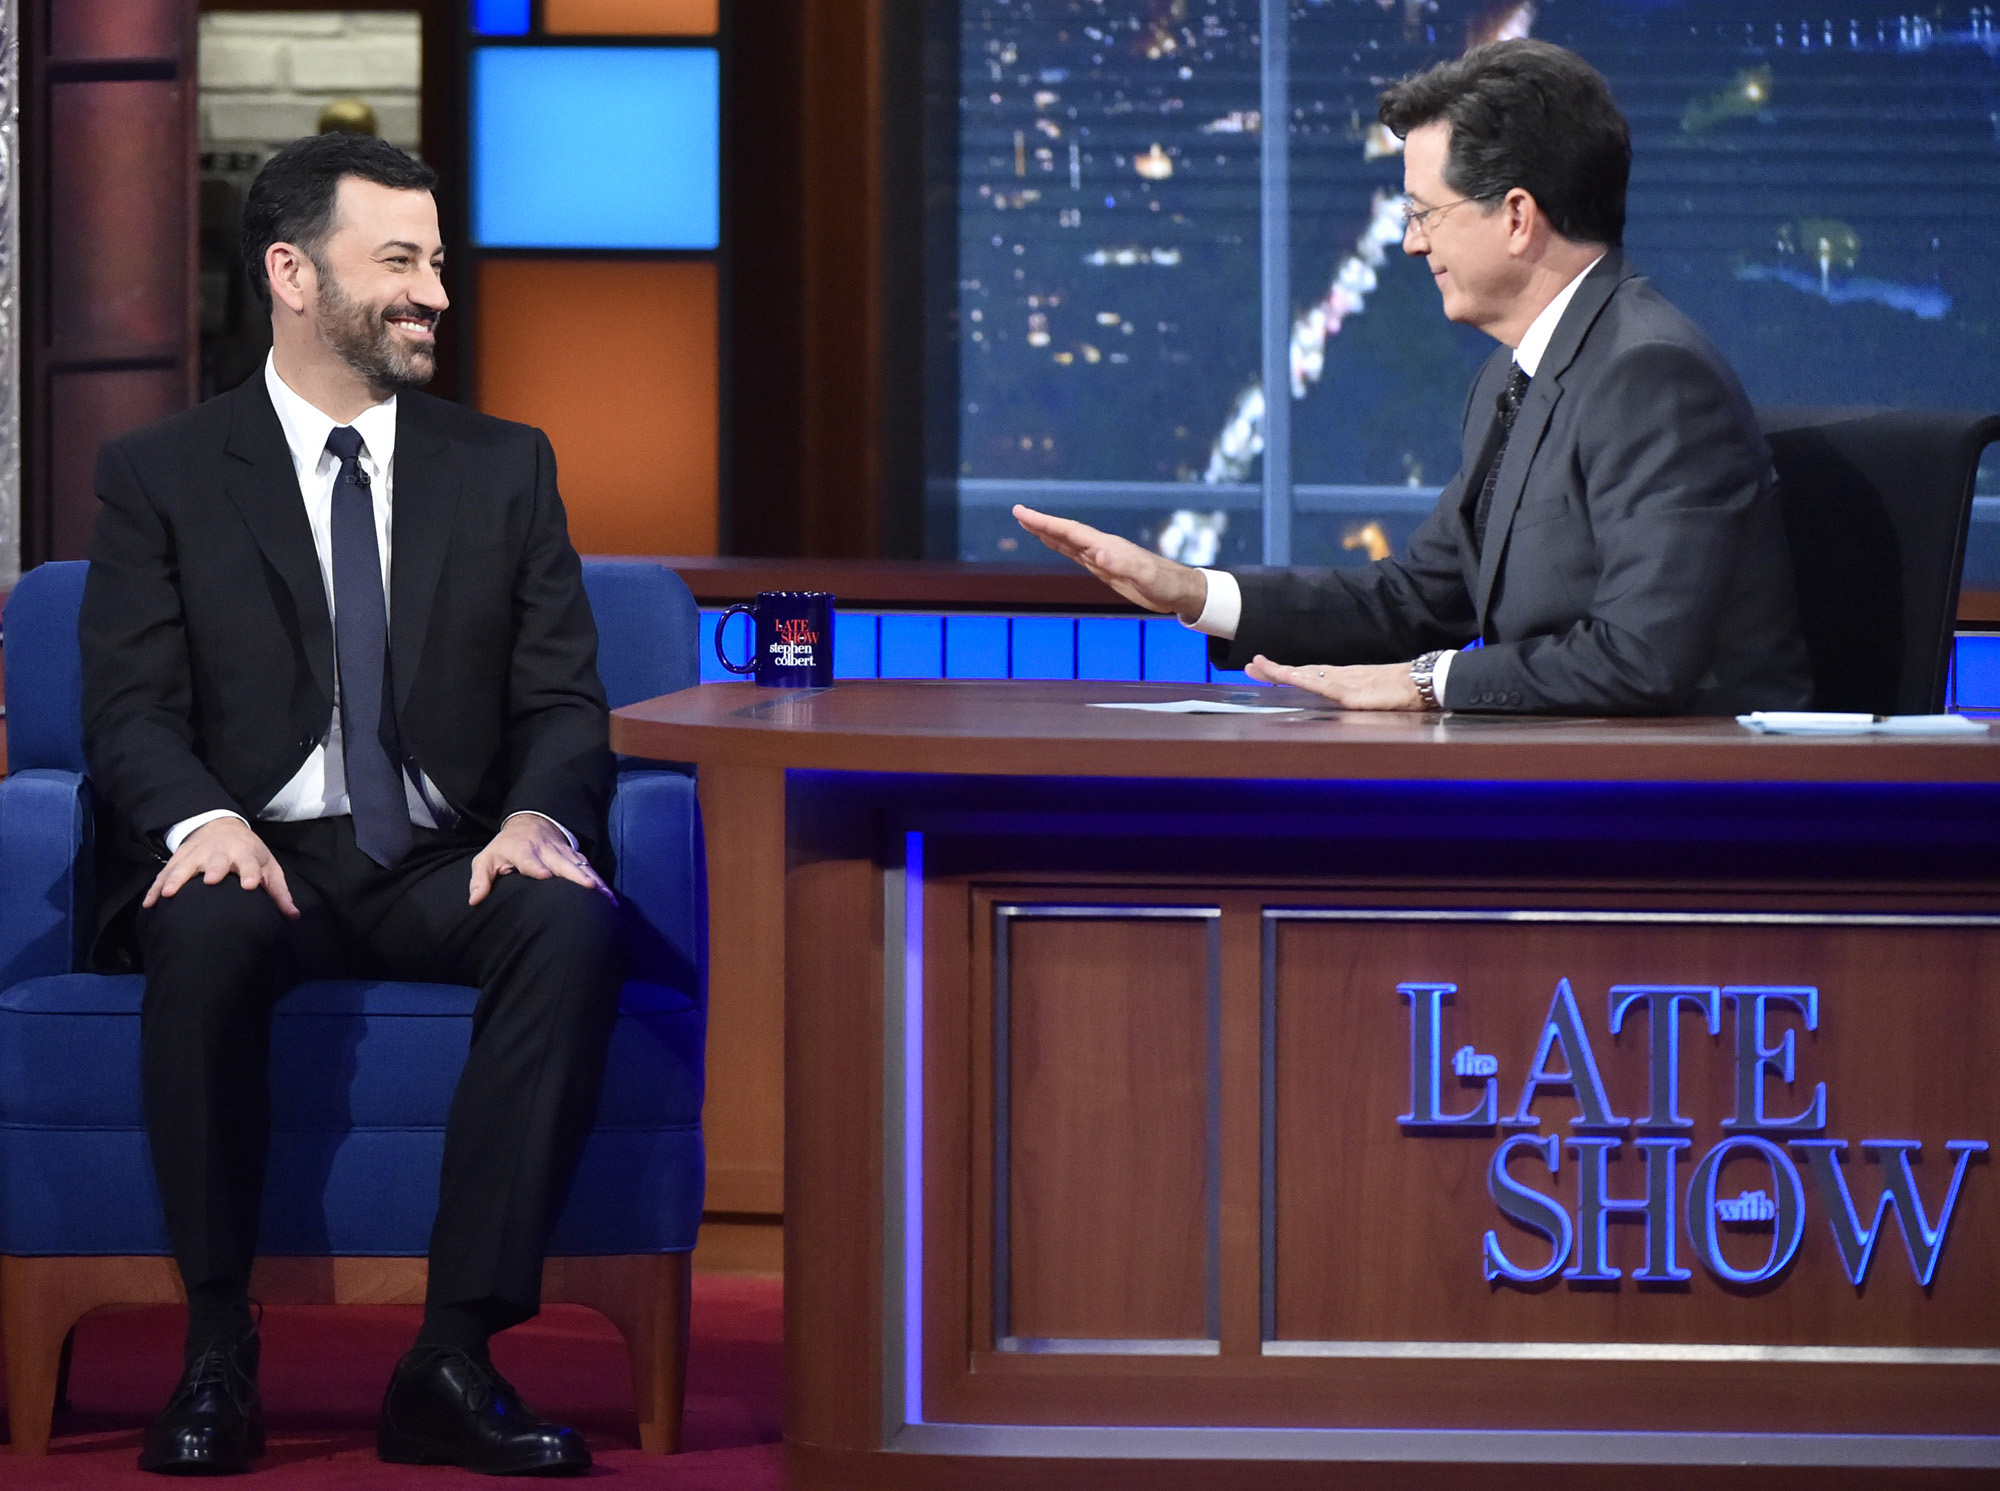 The Late Show with Stephen Colbert with Jimmy Kimmel as his guest on Friday's 10/16/15 show in New York.